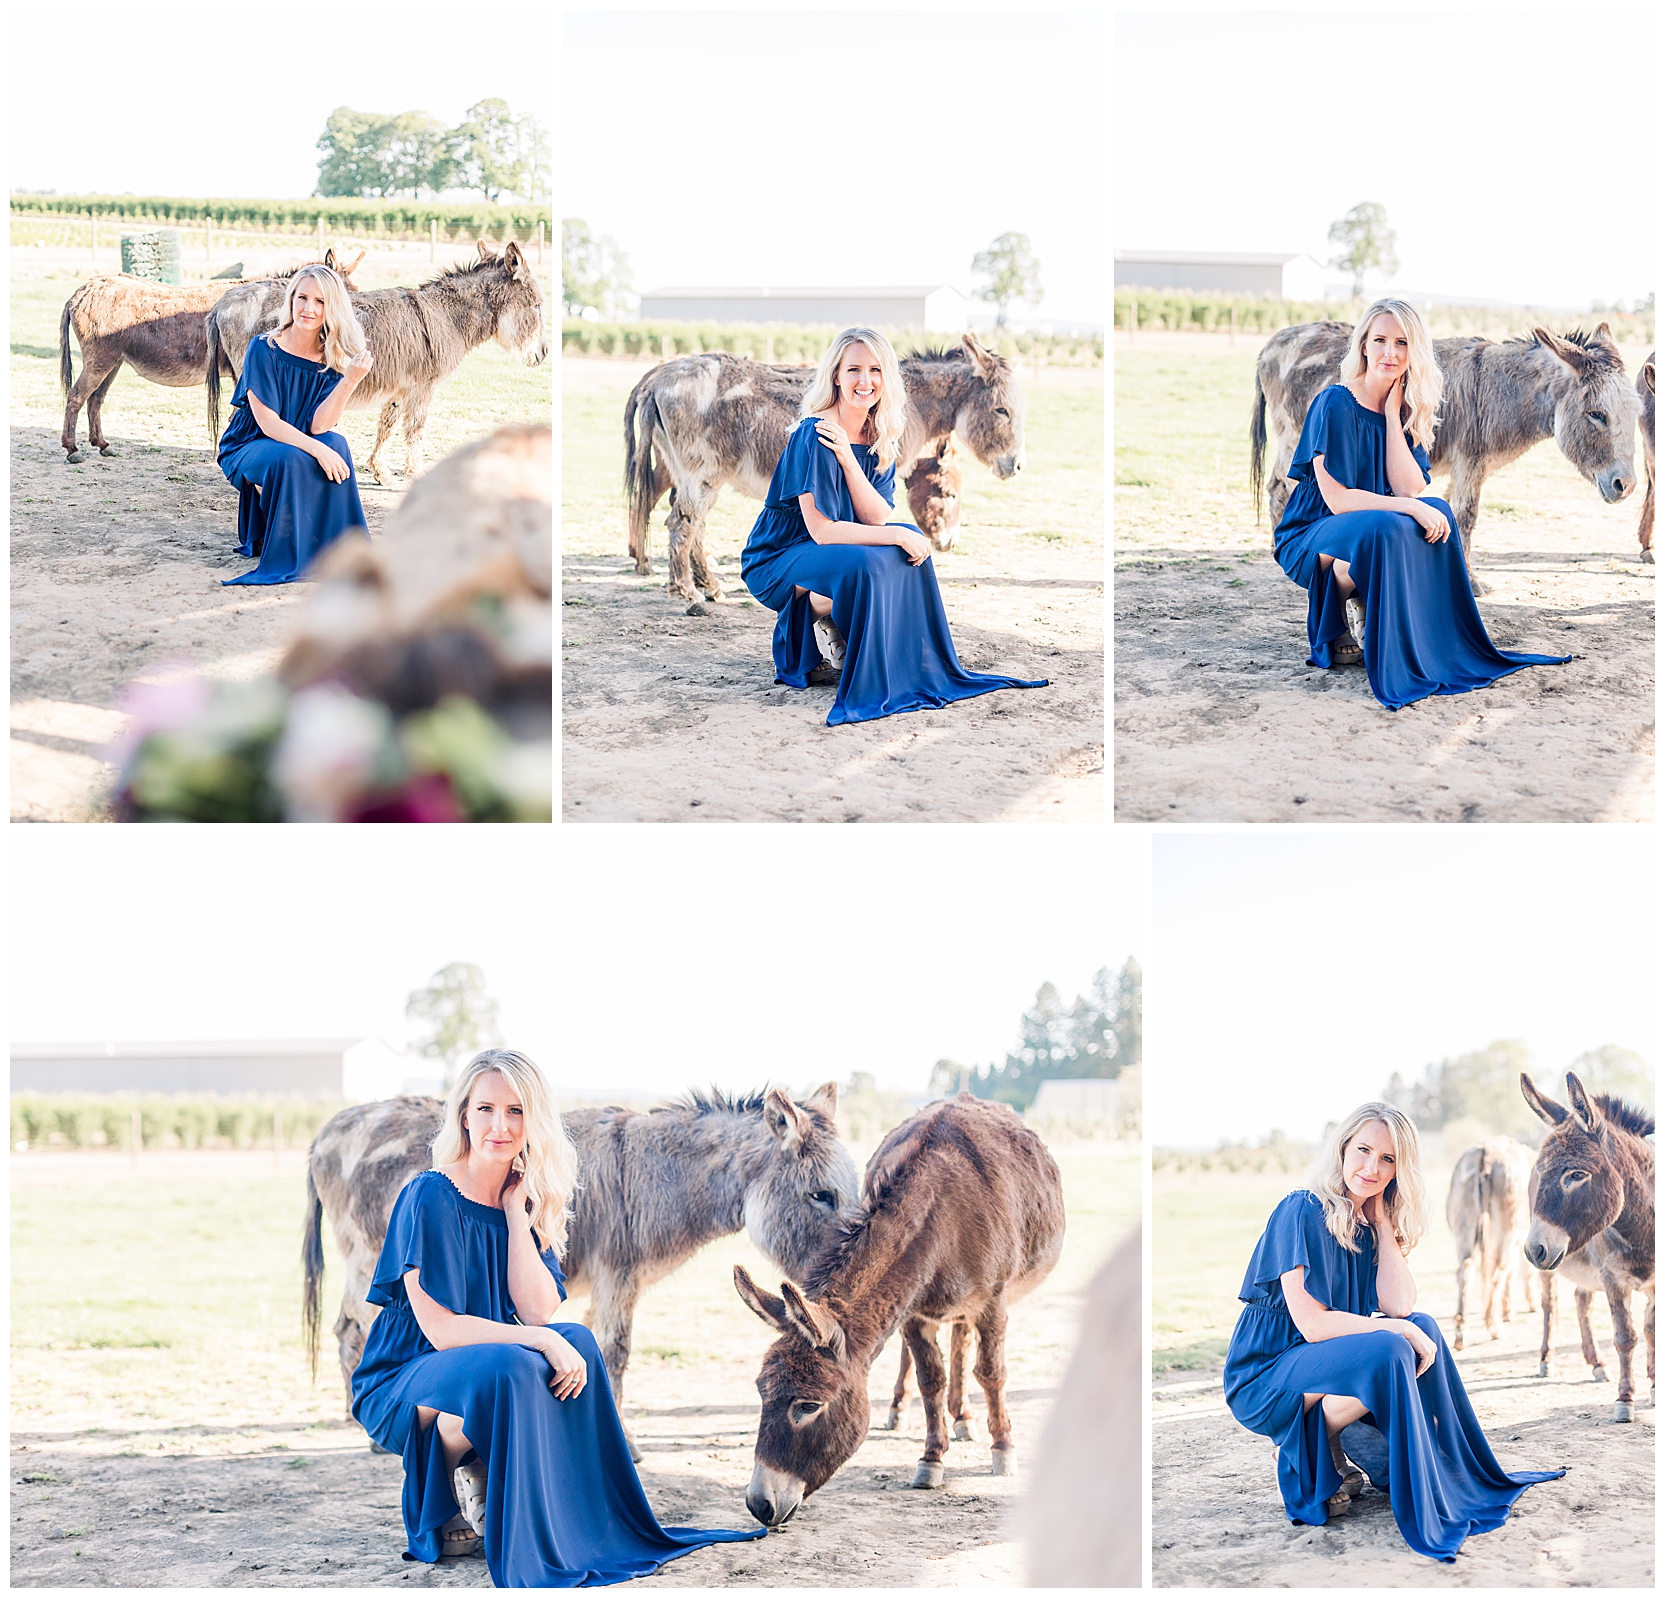 jessicafredericks_st petersburg_wedding_photographer_bridesmaid_farm_donkey_flower crown_inspo_0003.jpg